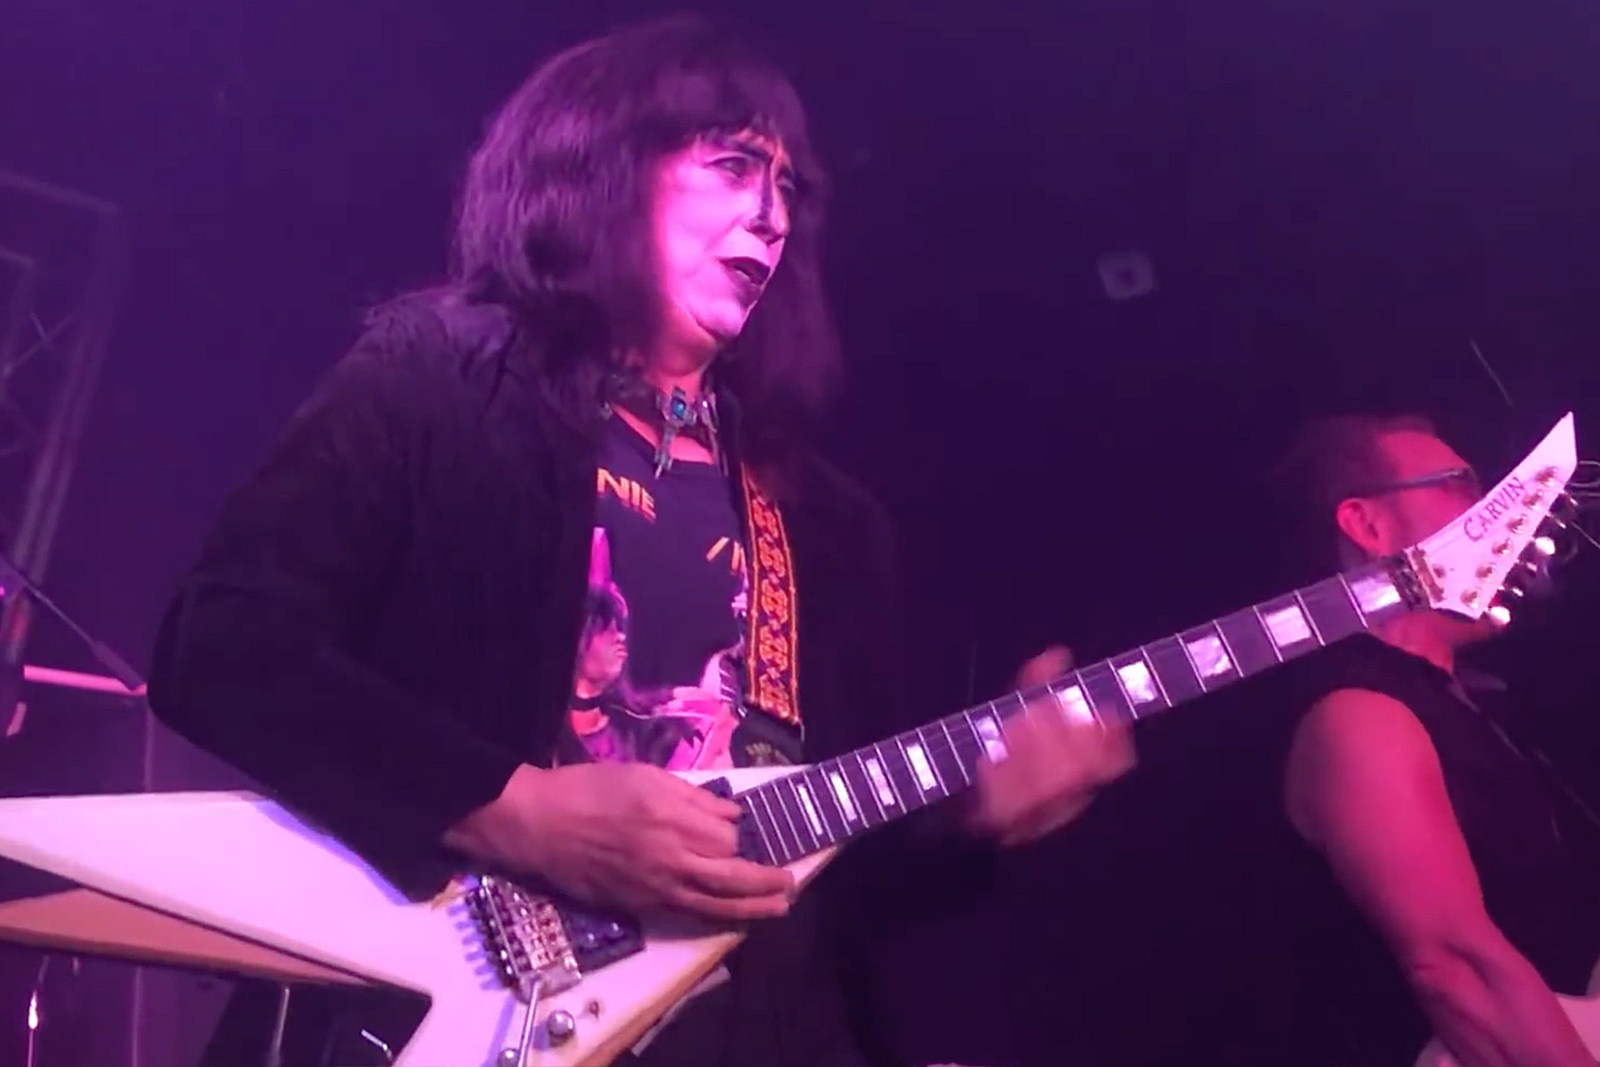 Vinnie Vincent Open to Guest Appearance at Final Kiss Show